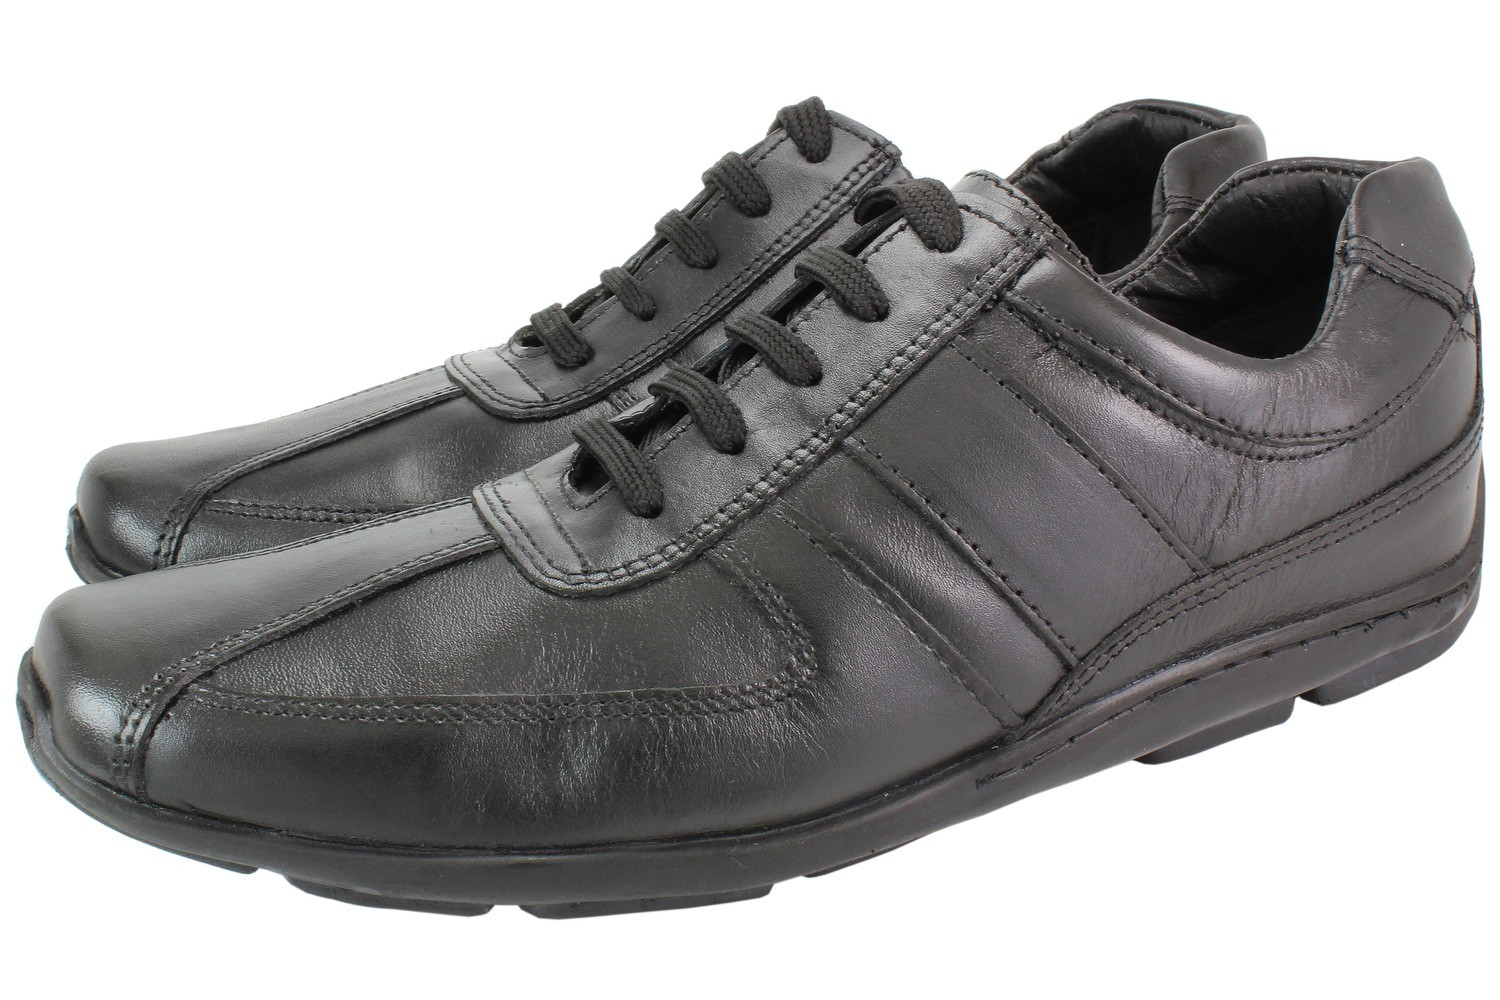 Mens Shoes Genuine LEATHER Black - SUGGESTED RETAIL PRICE $45.00 - WHOLESALE PRICE $16